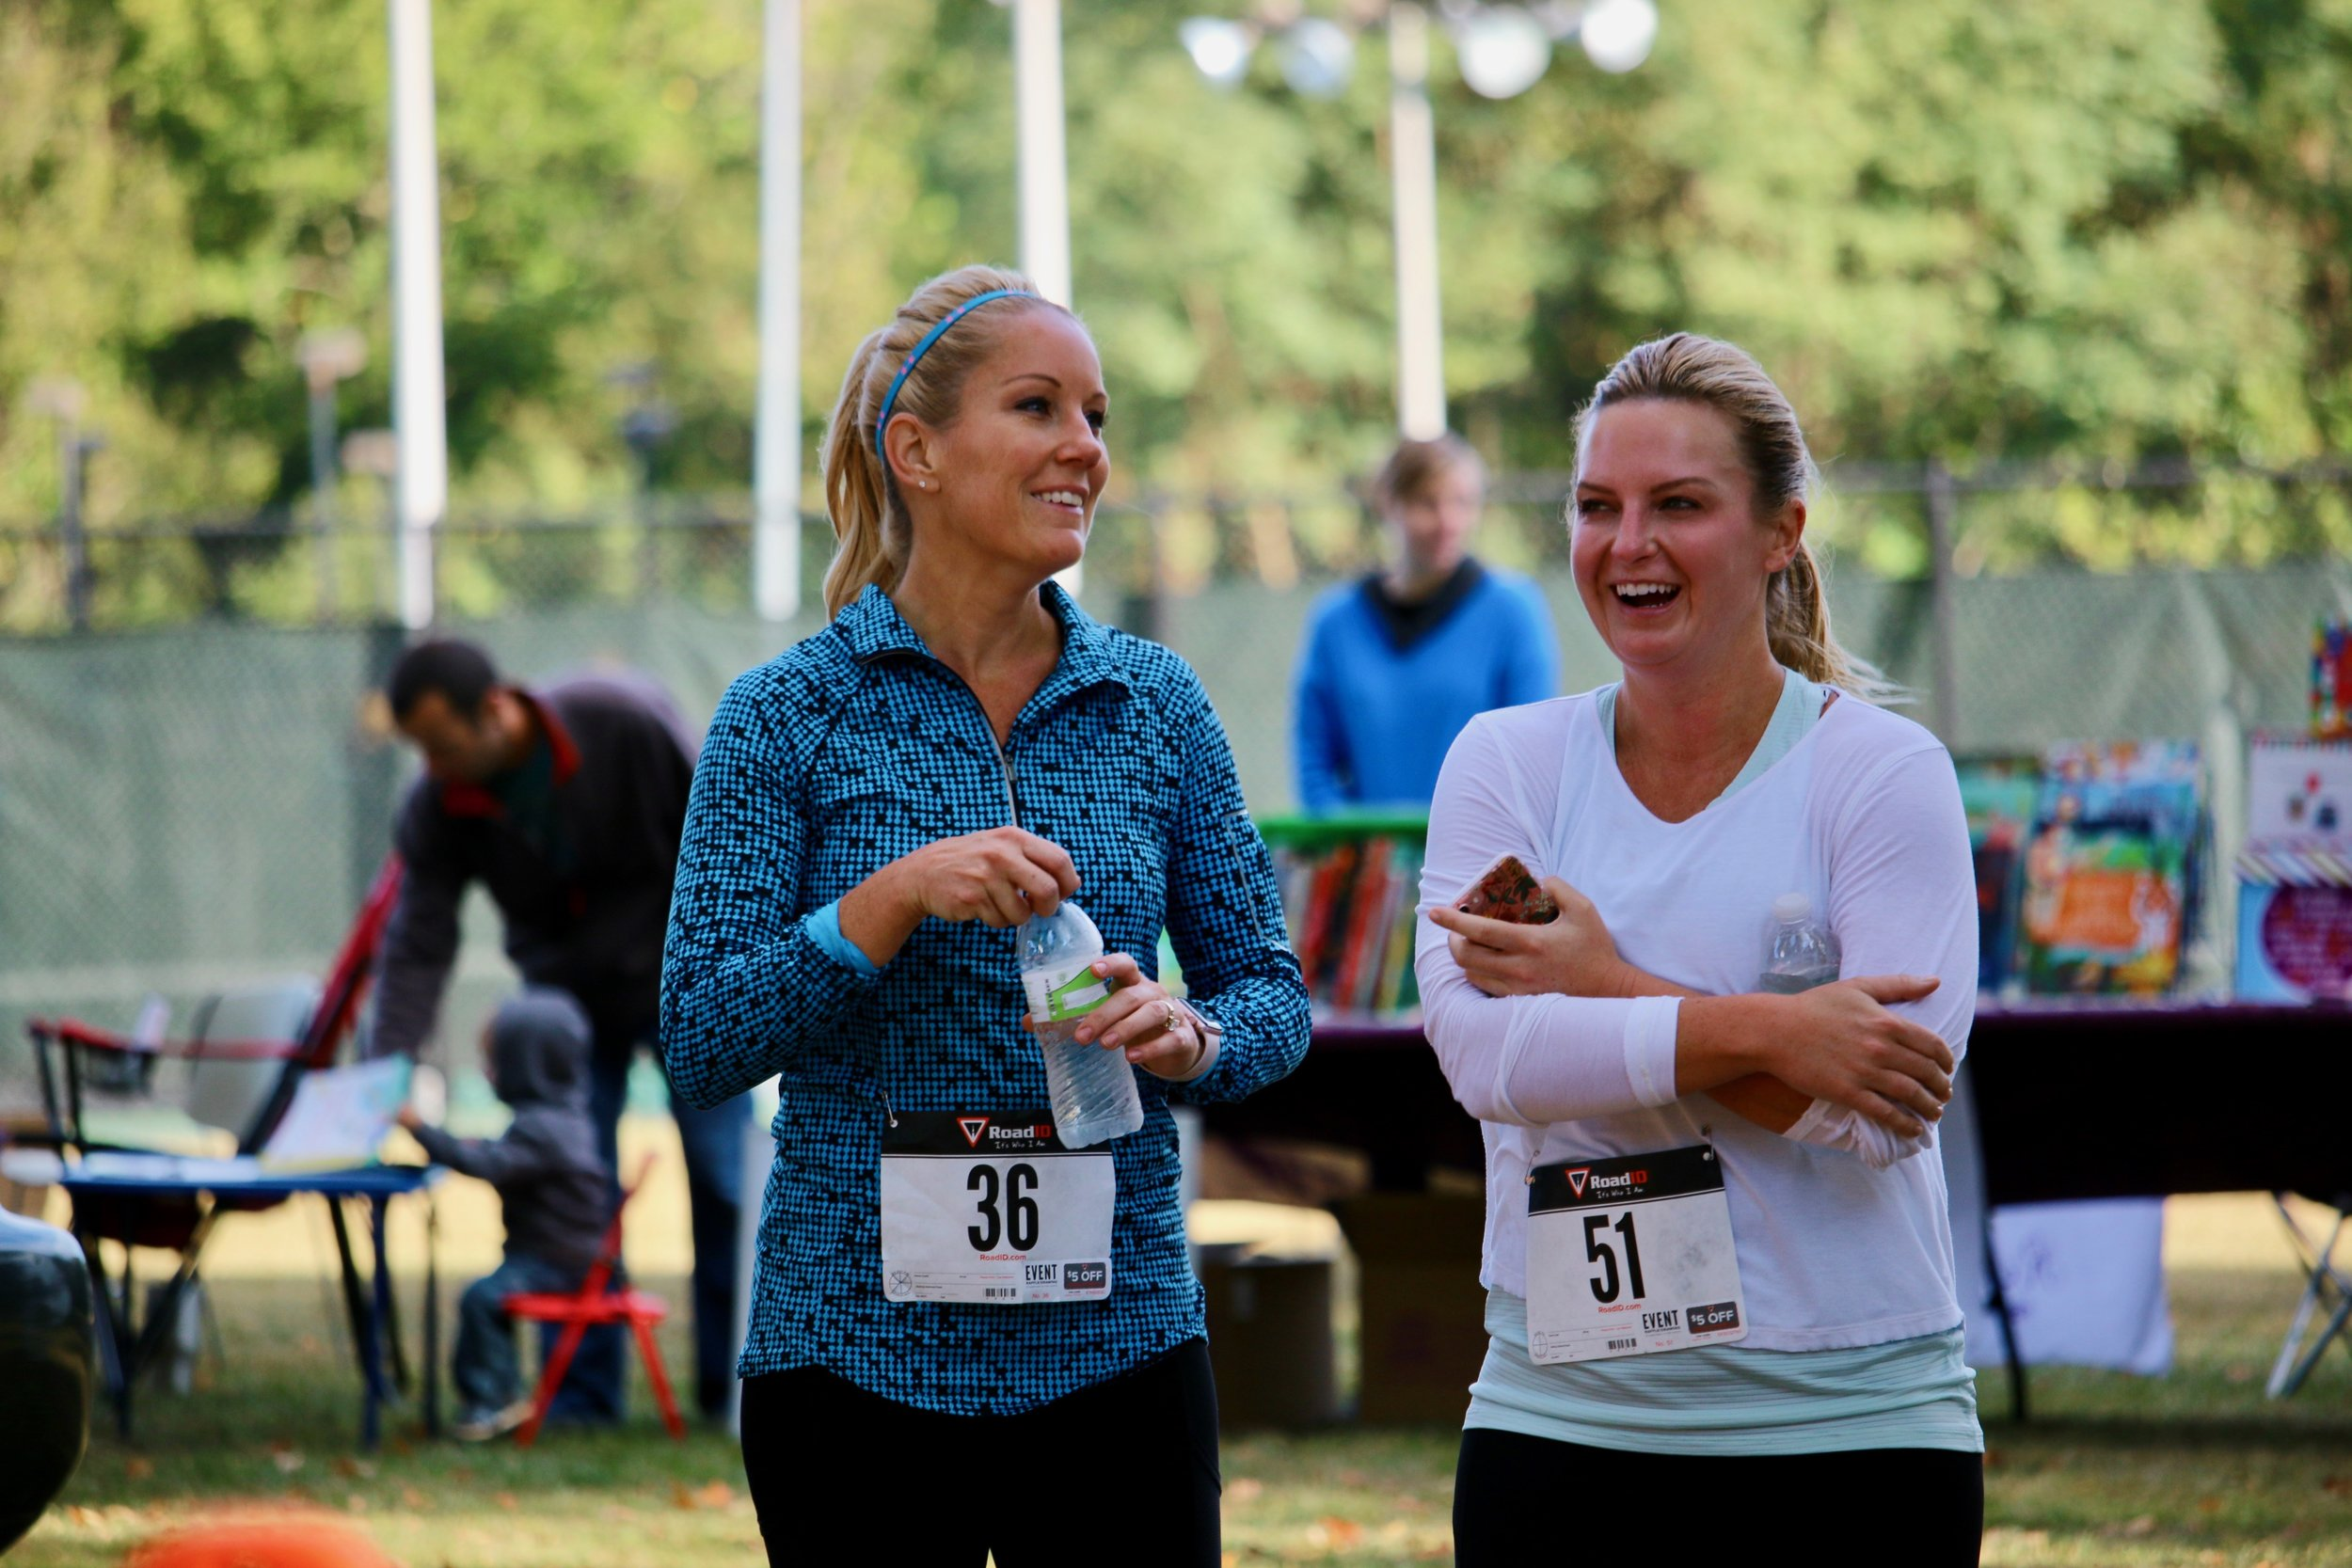 AlignLife of Springfield Health Missions 5K Run for Prevention